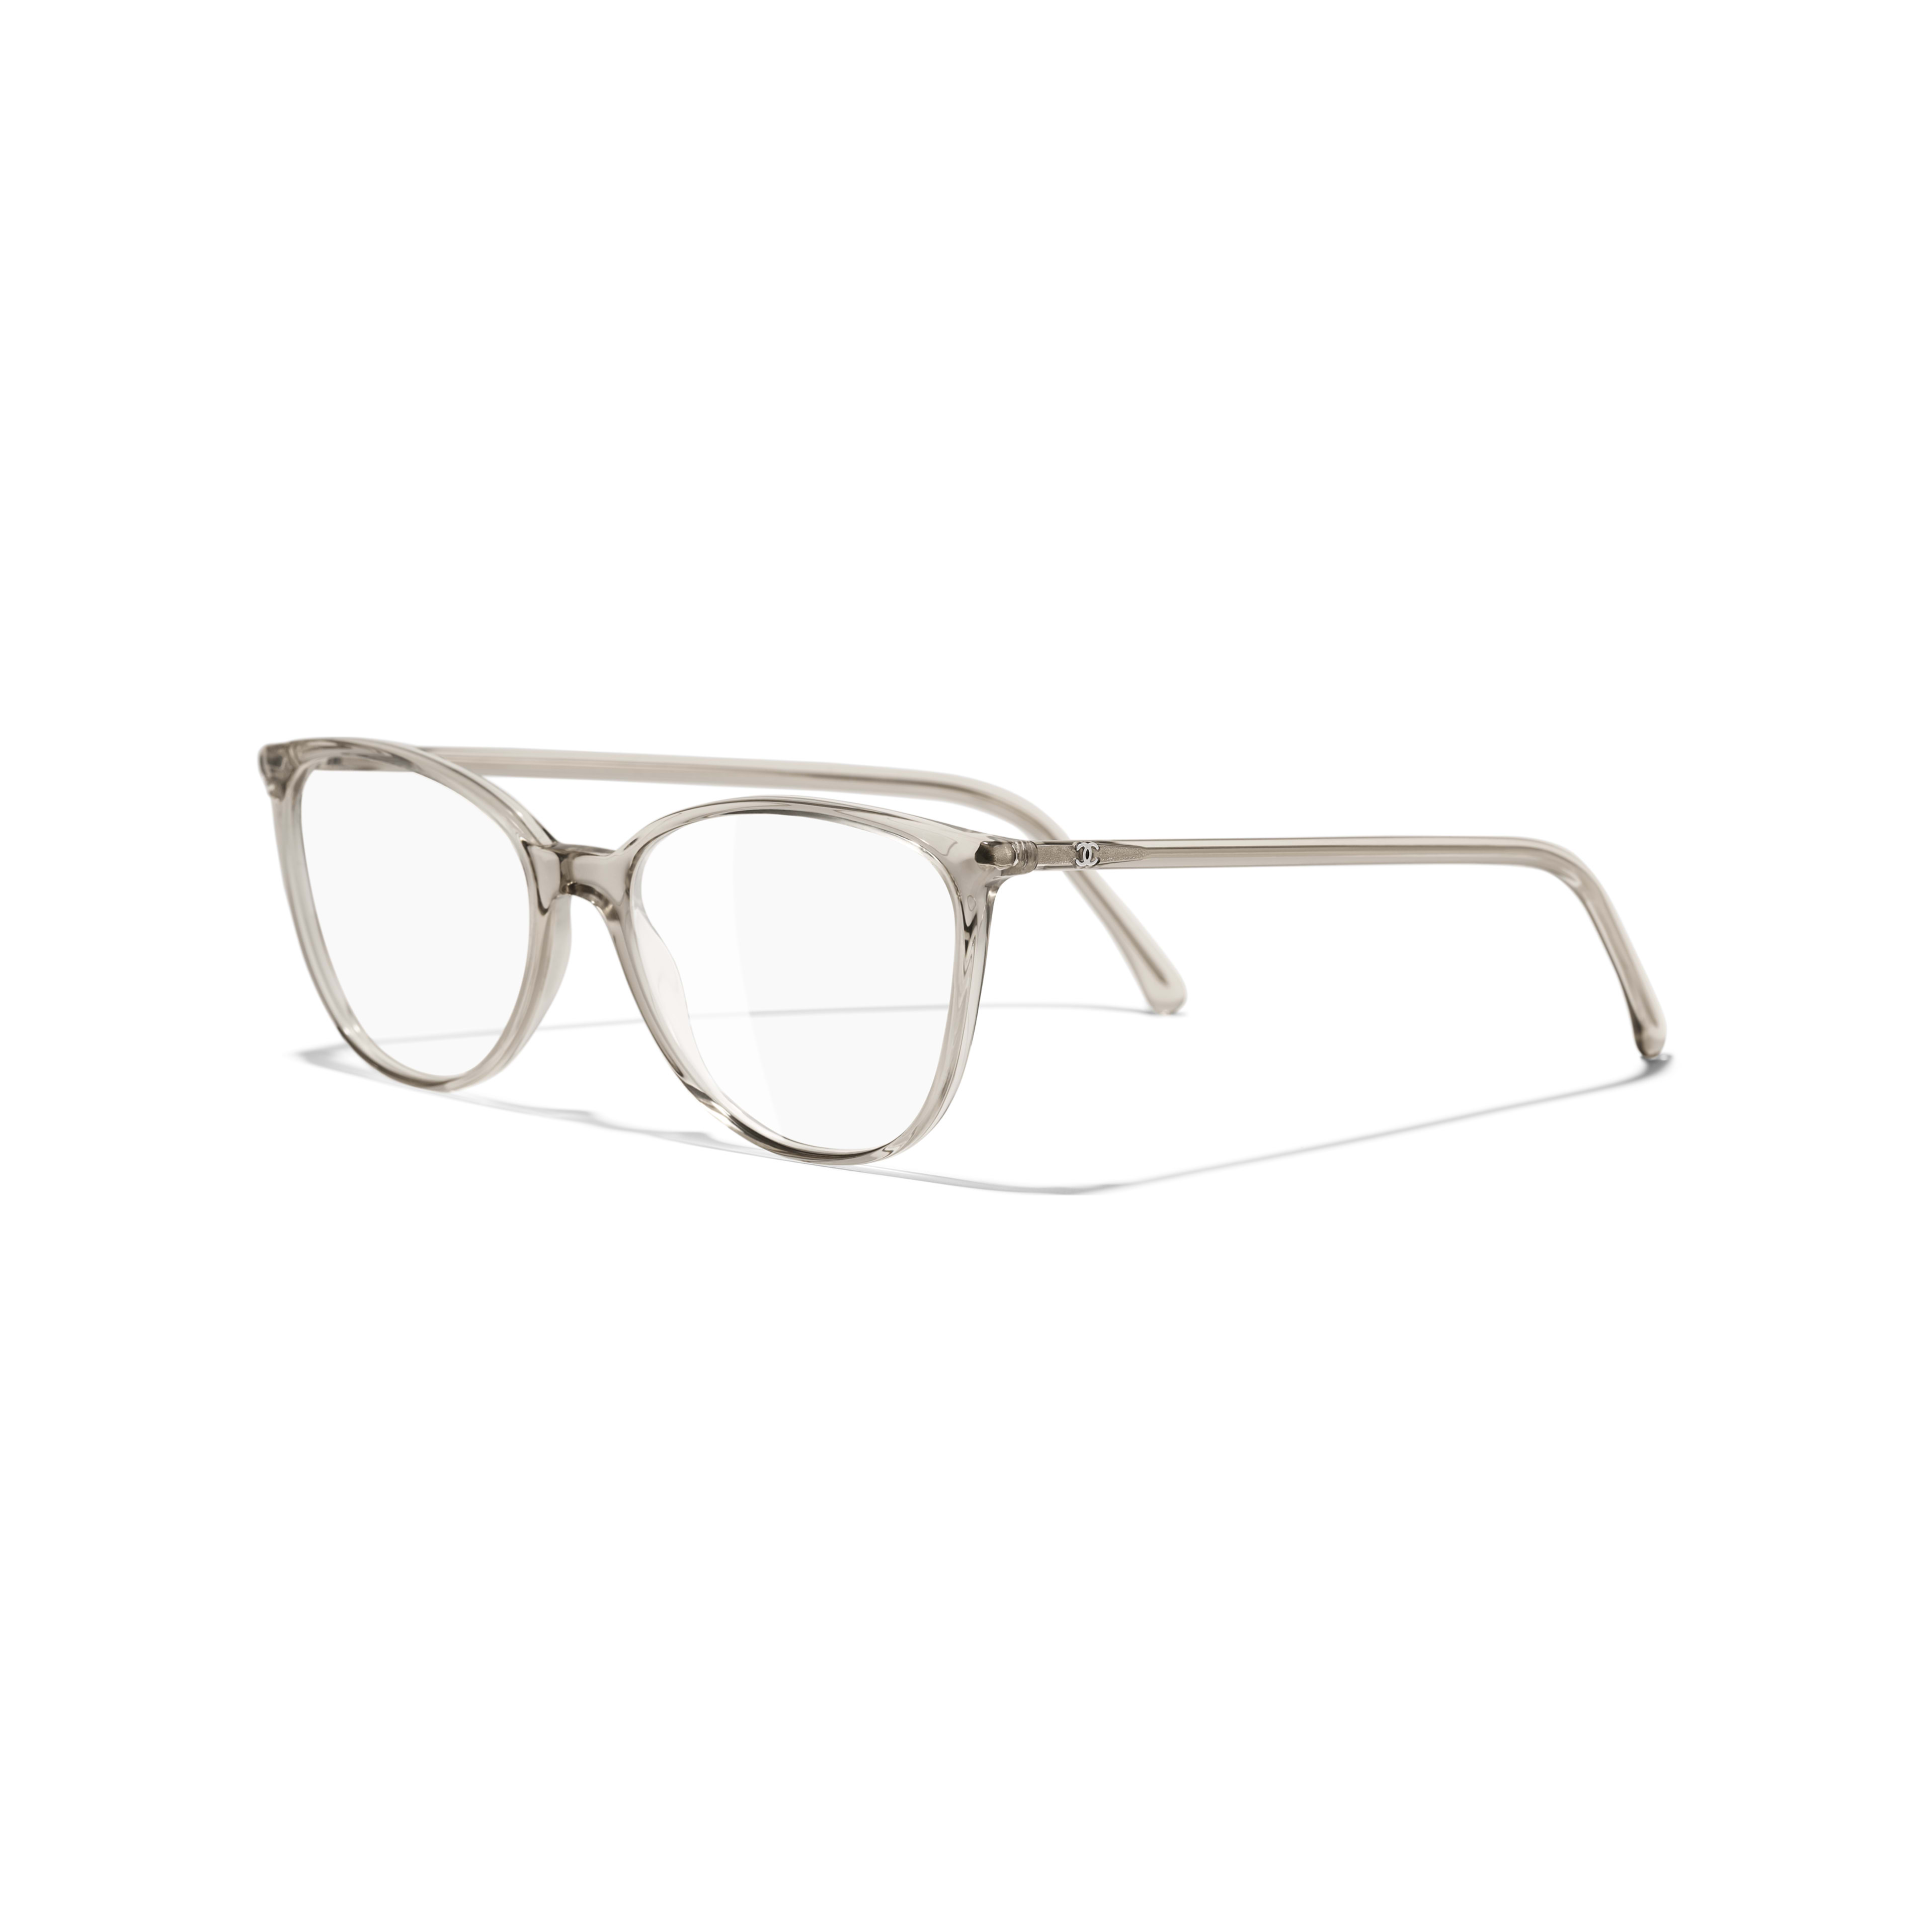 Square Eyeglasses - Transparent Beige - Acetate - Extra view - see standard sized version